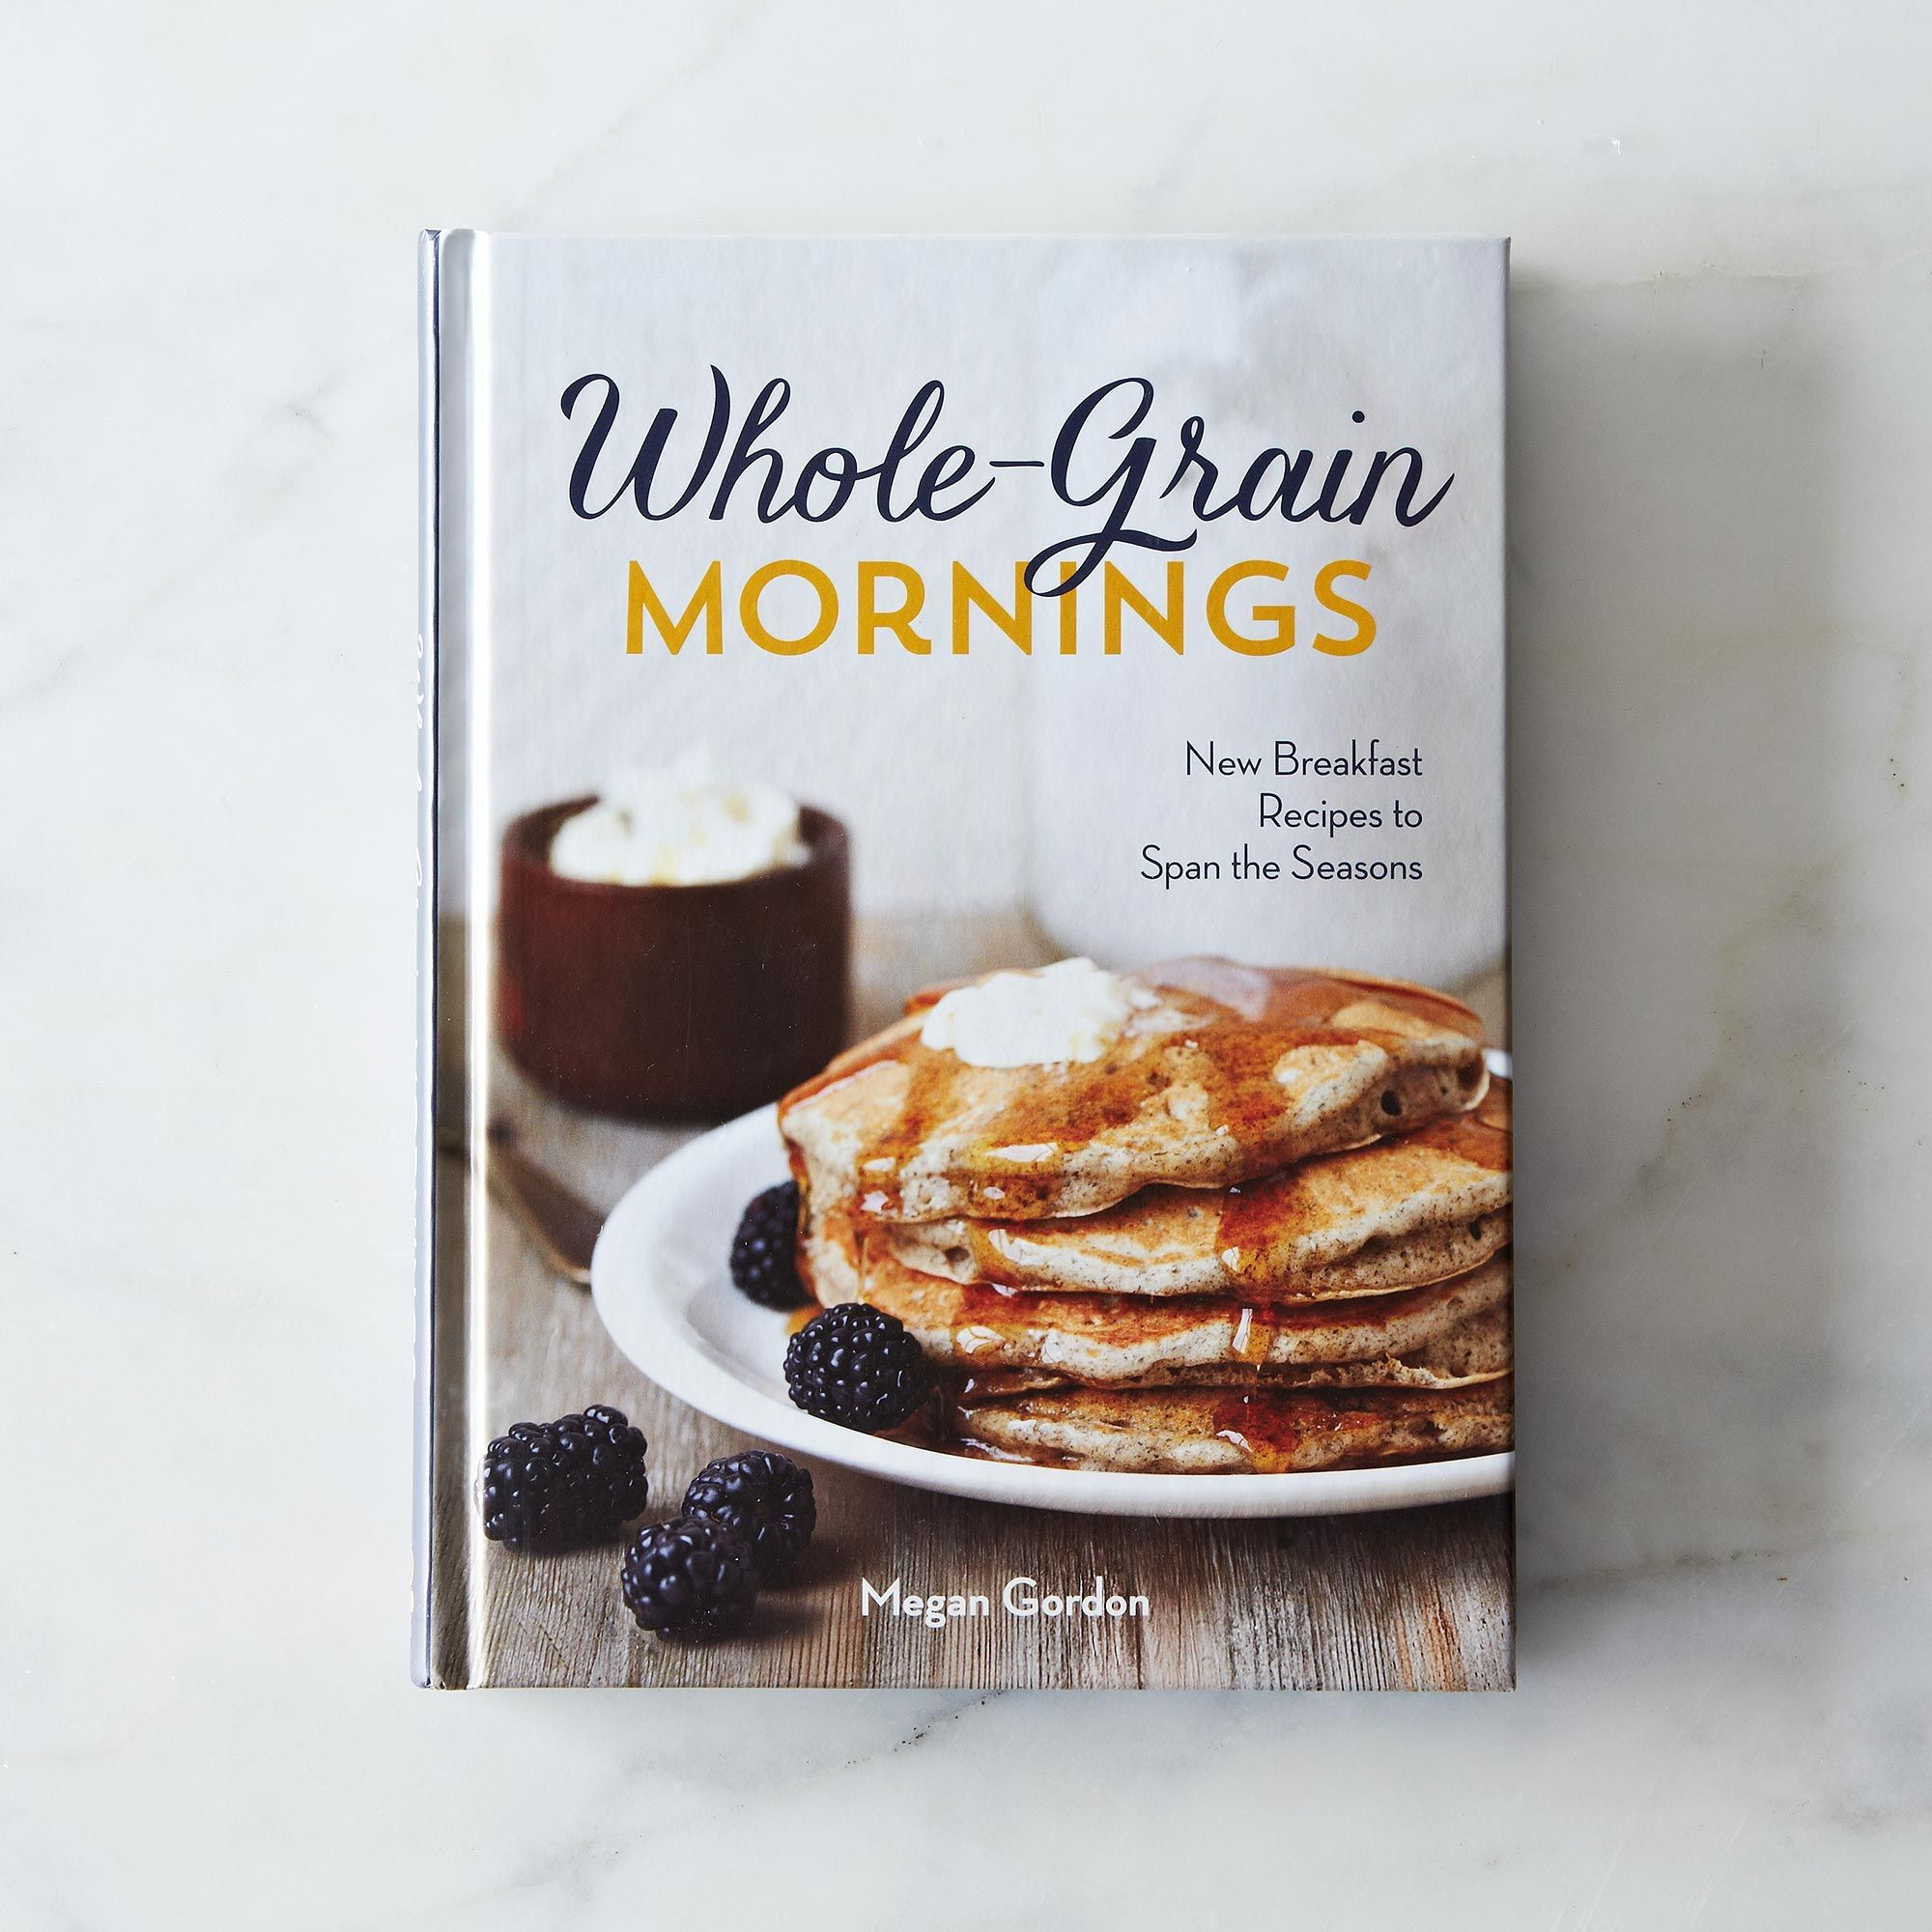 8a2d387c dd69 4b76 85ee e154d0d32e83  2013 1220 whole grain mornings cookbook 004